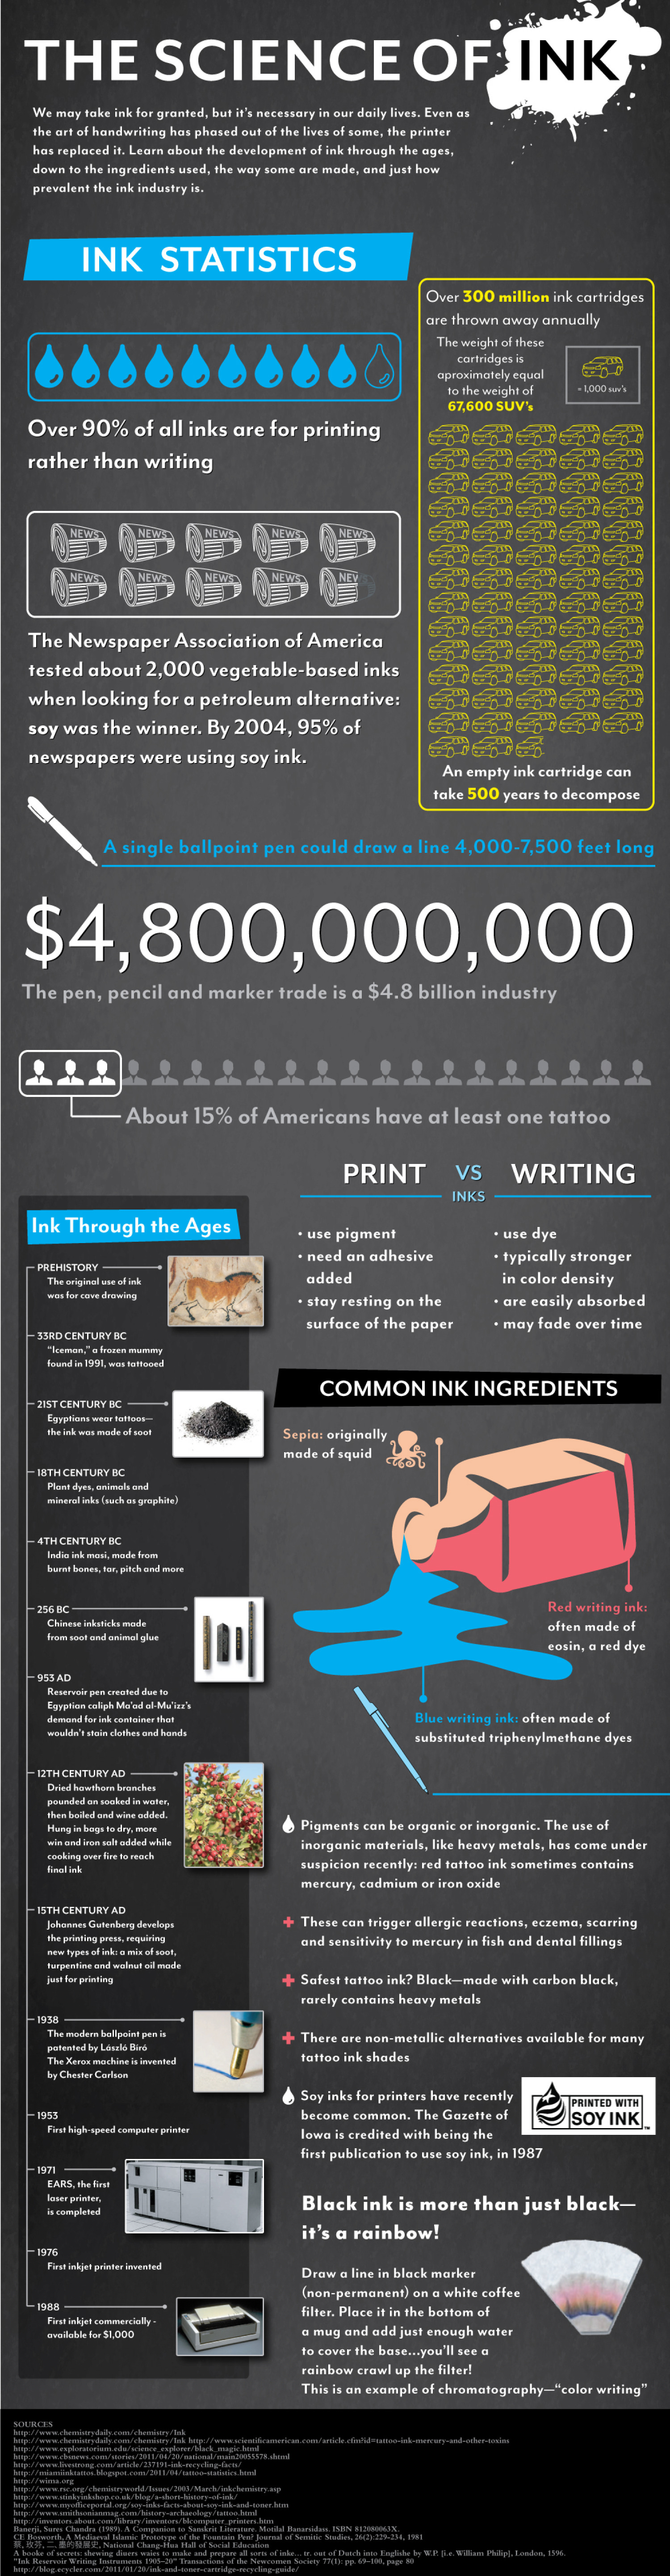 The Science of Ink Infographic